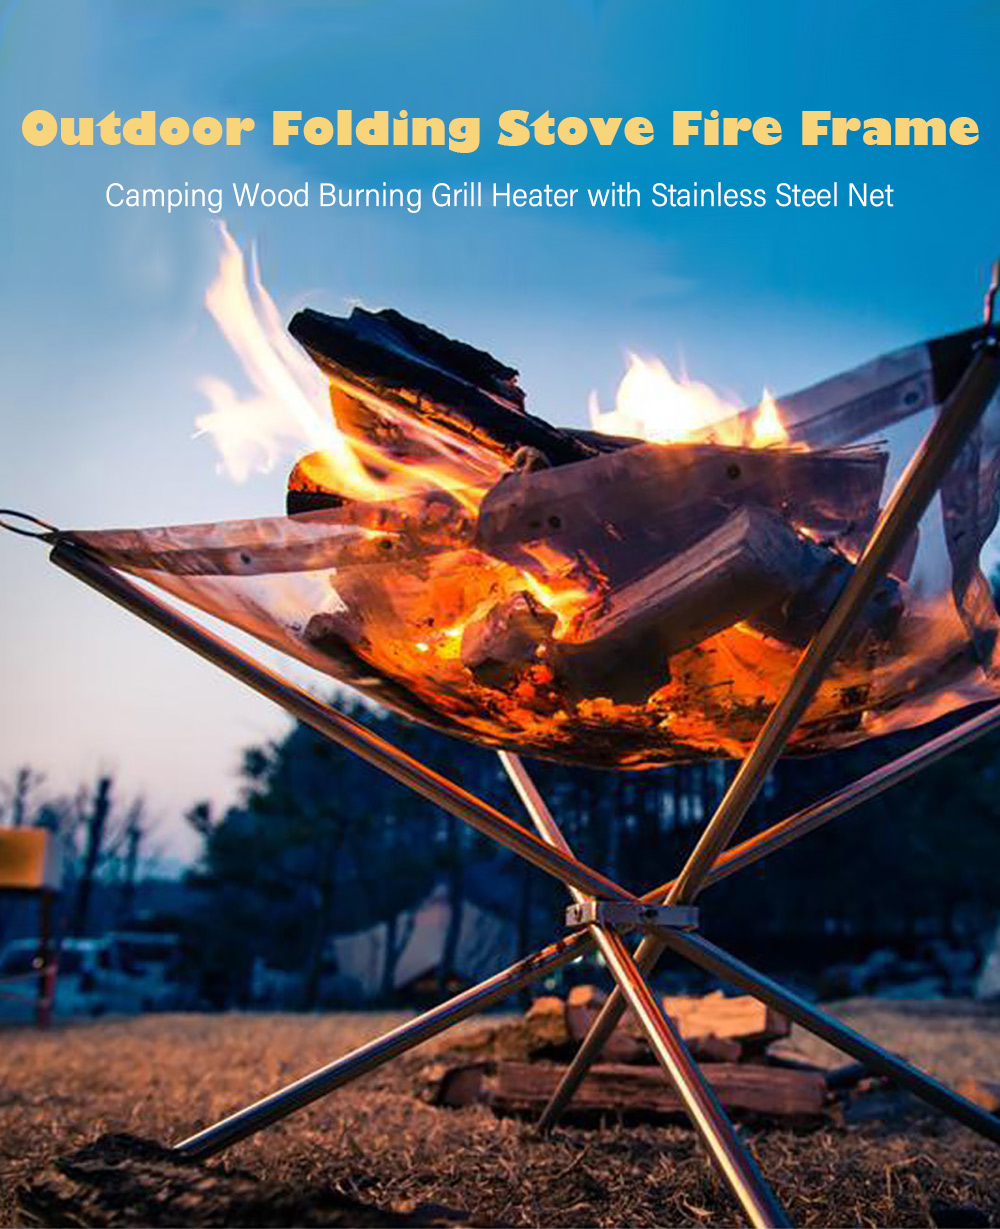 Selpa Portable Folding Stove Fire Frame Camping Wood Burning Grill Heater Stainless Steel Net